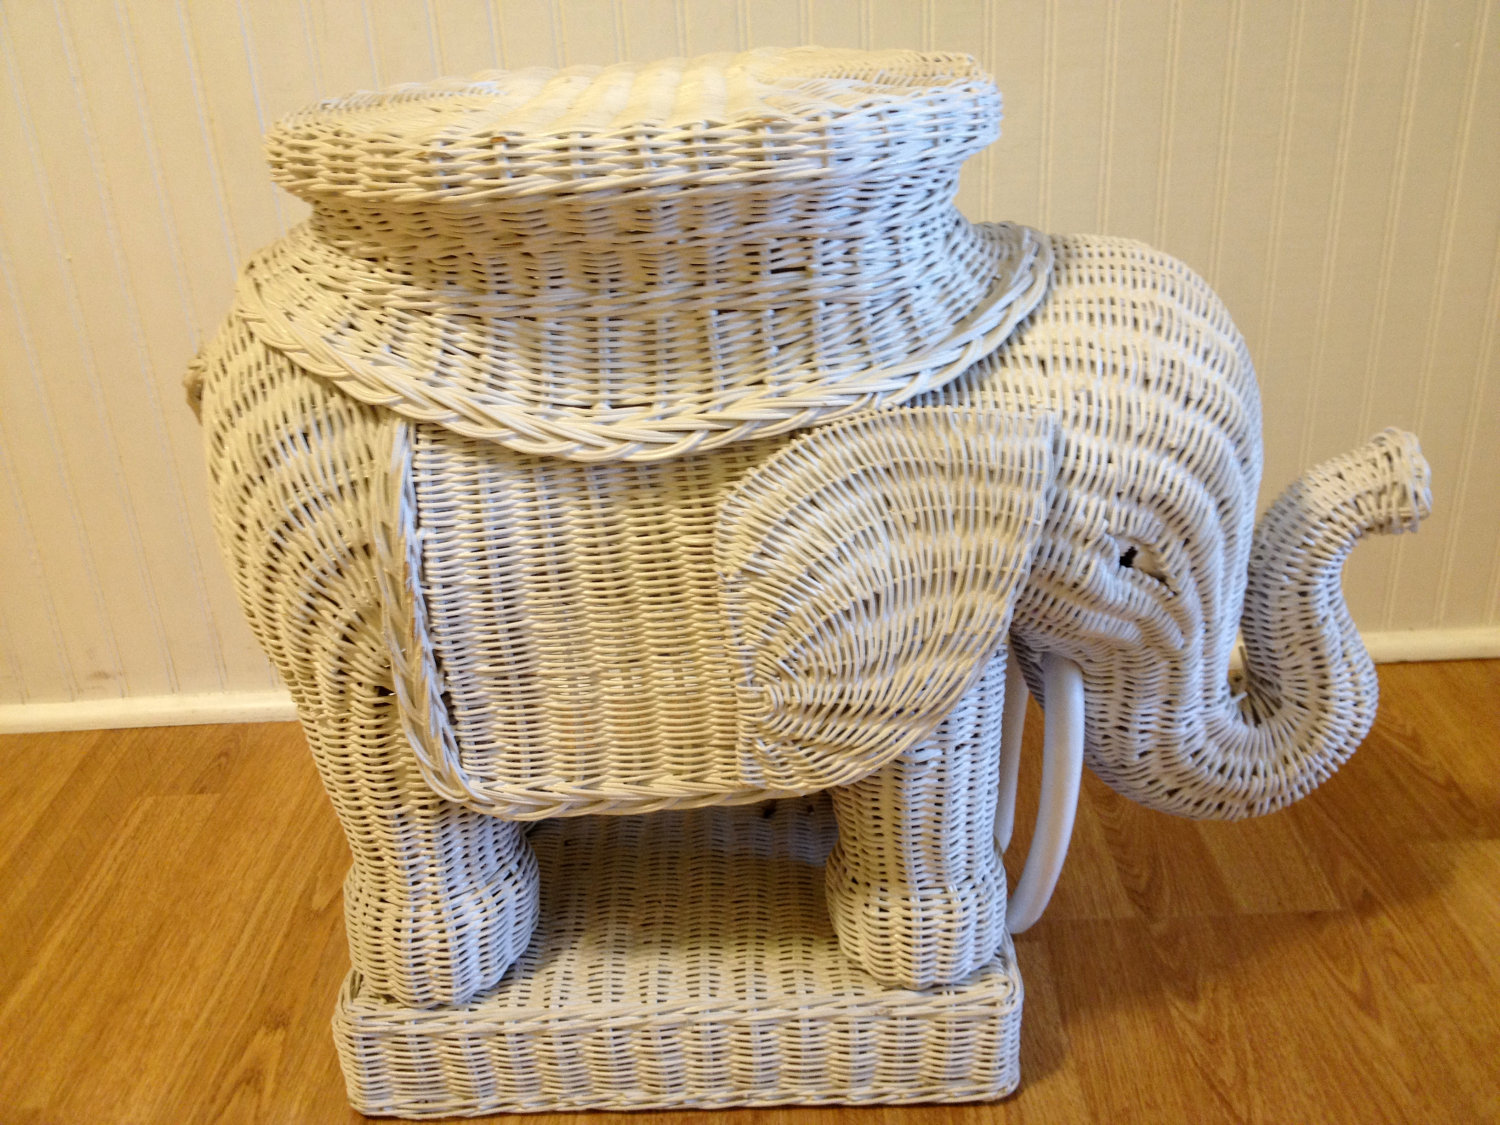 furniture exquisite furnishing for home interior decoration using extraordinary decorative round white wicker elephant table including solid maple wood flooring accent oak trestle